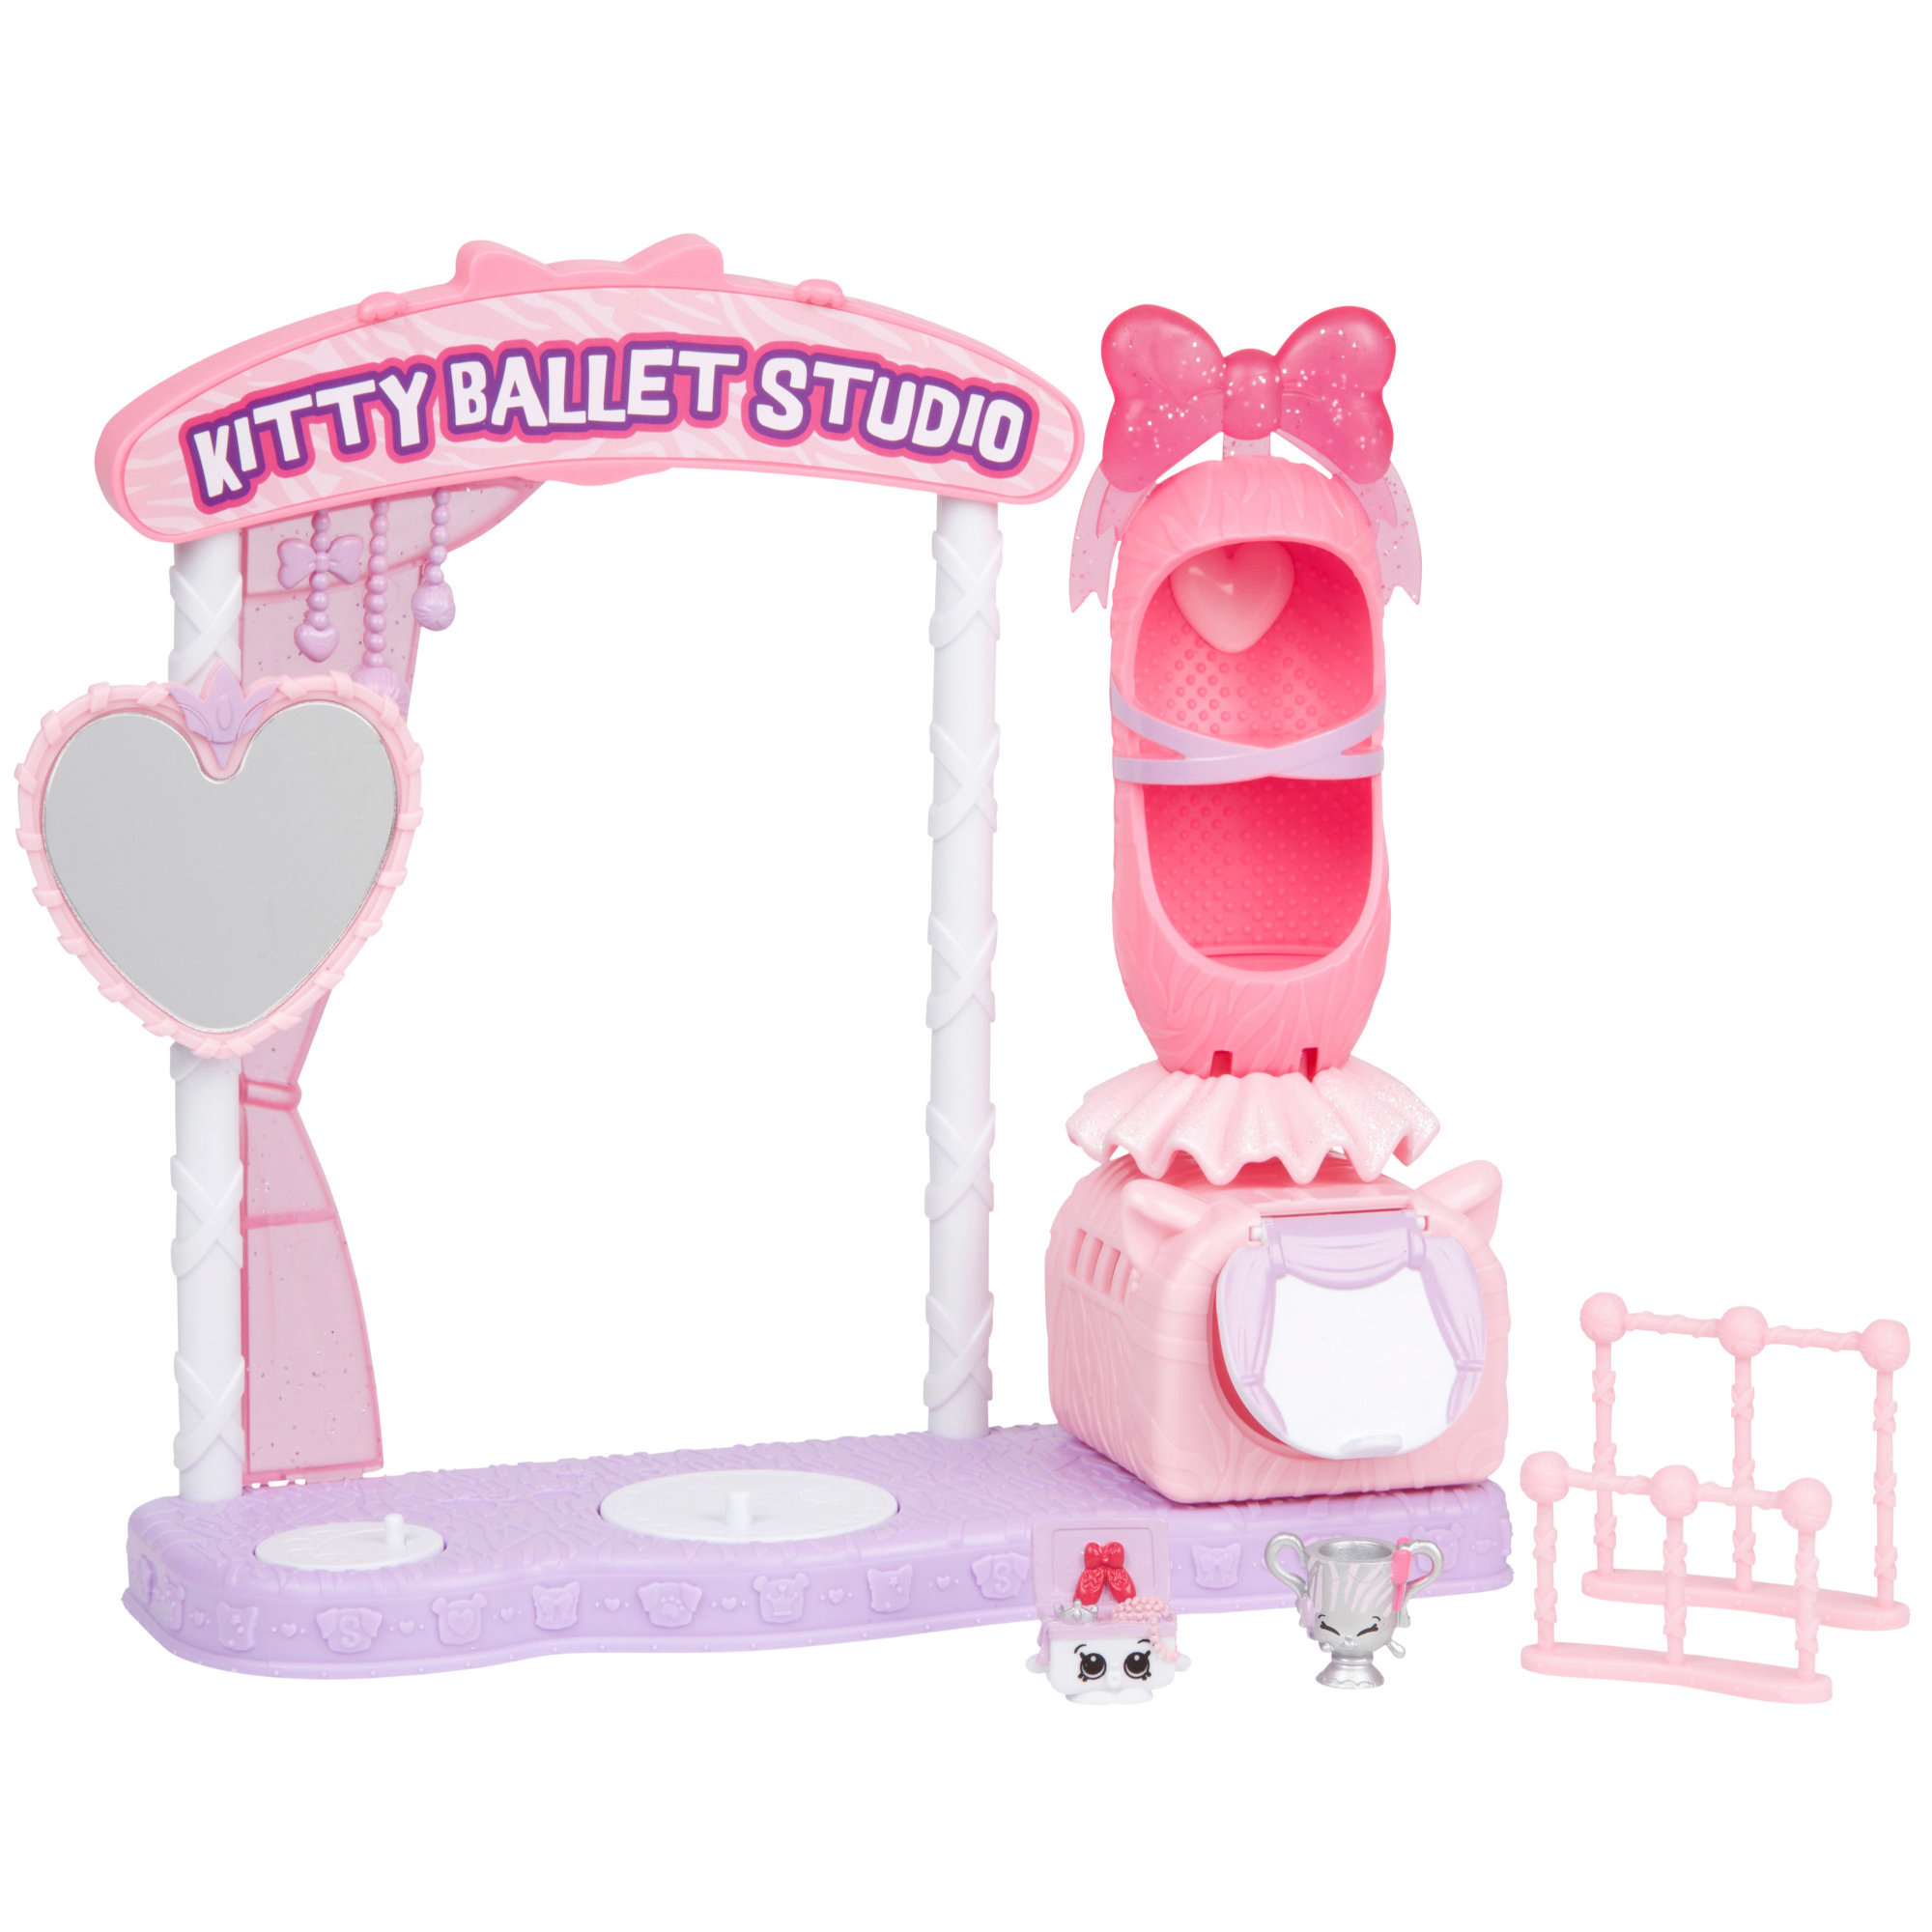 License 2 Play - Shopkins Series 9, Kitty Ballet Playset